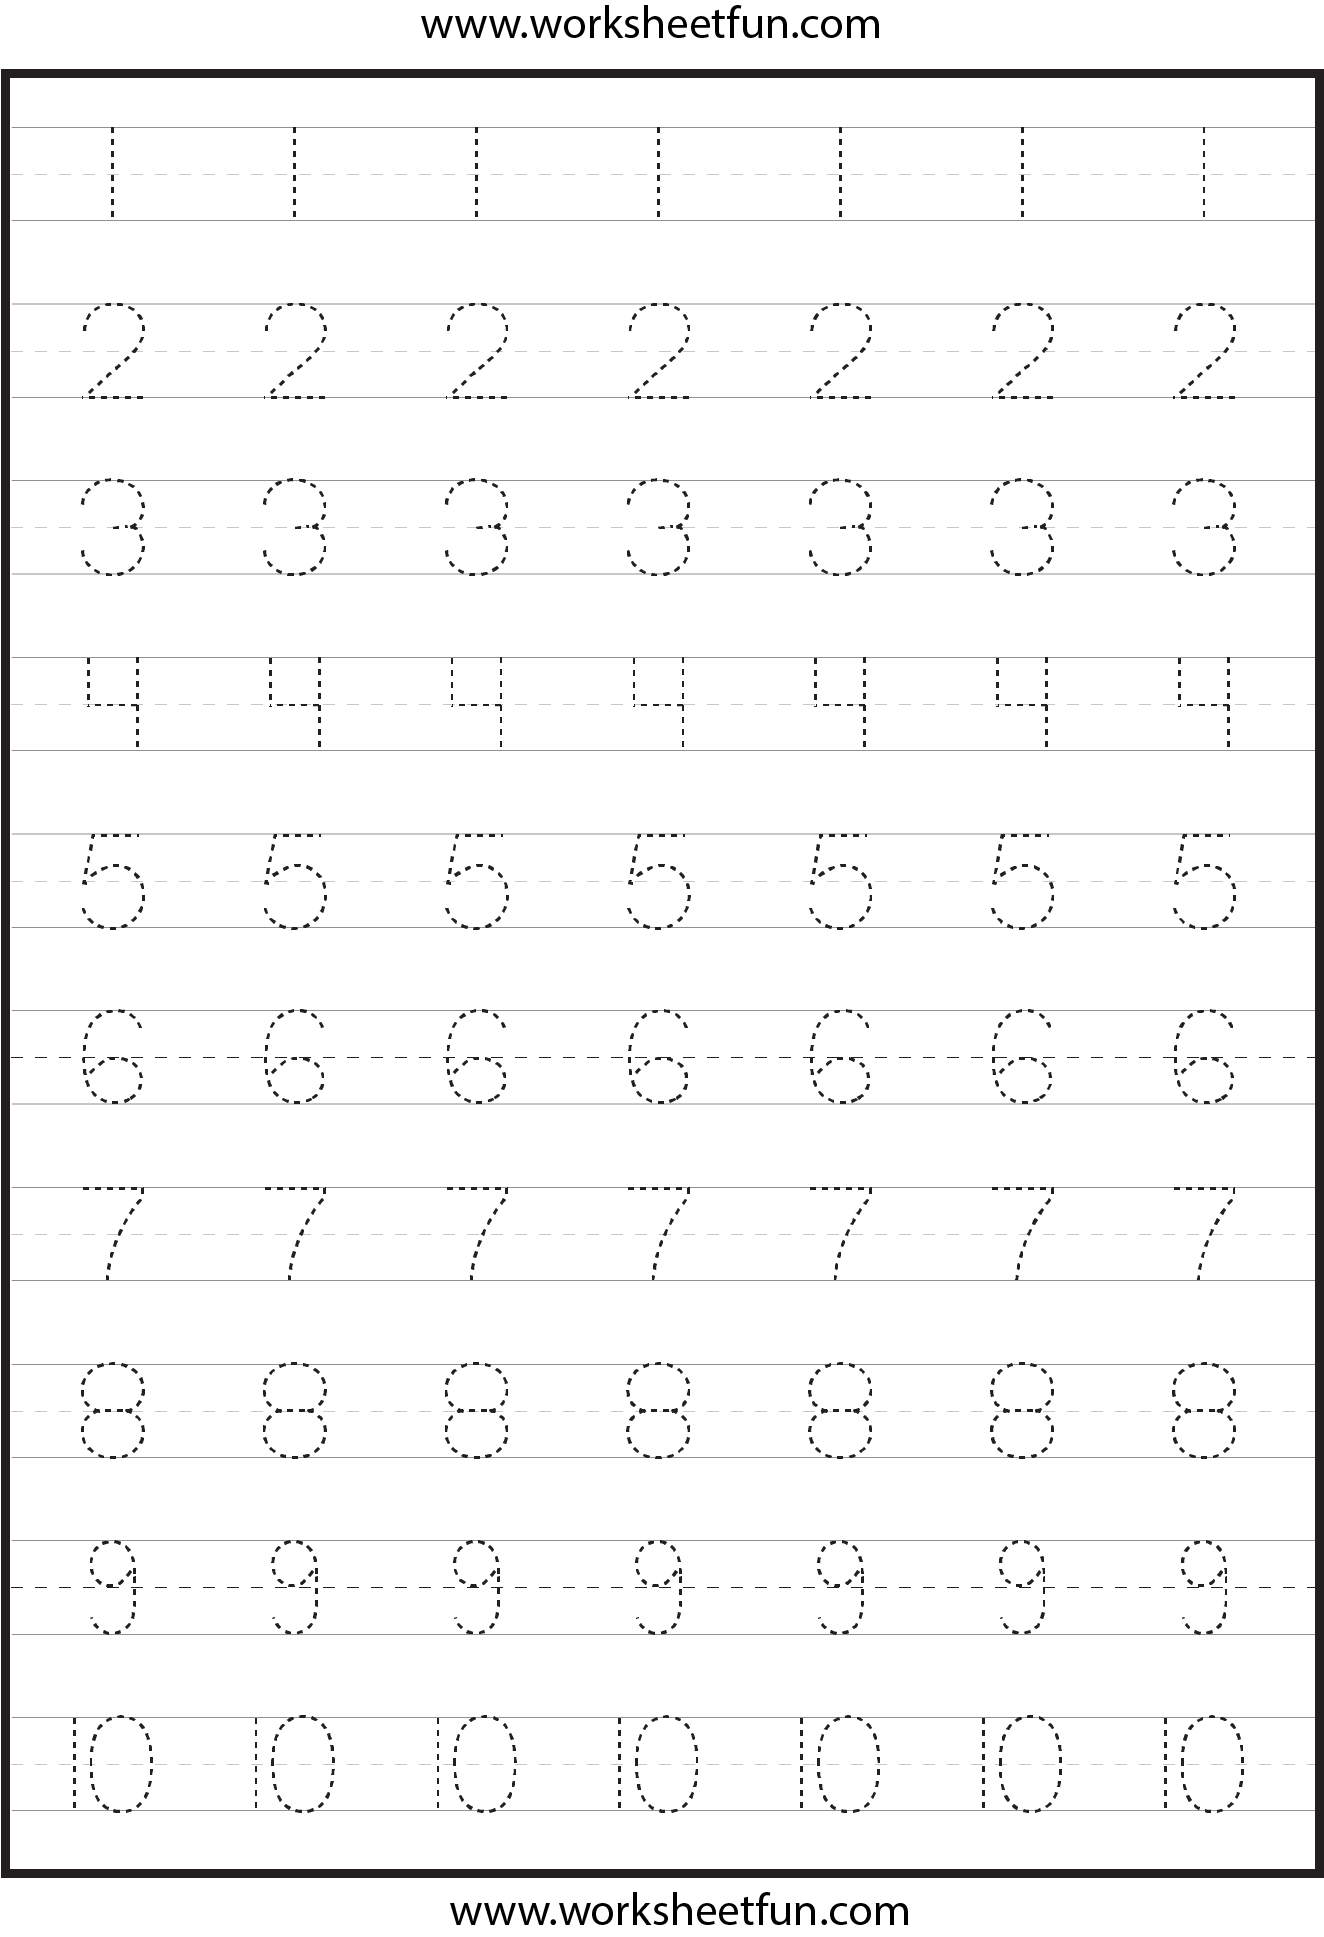 Worksheets Numbers Tracing number tracing worksheets for kindergarten 1 10 ten worksheets